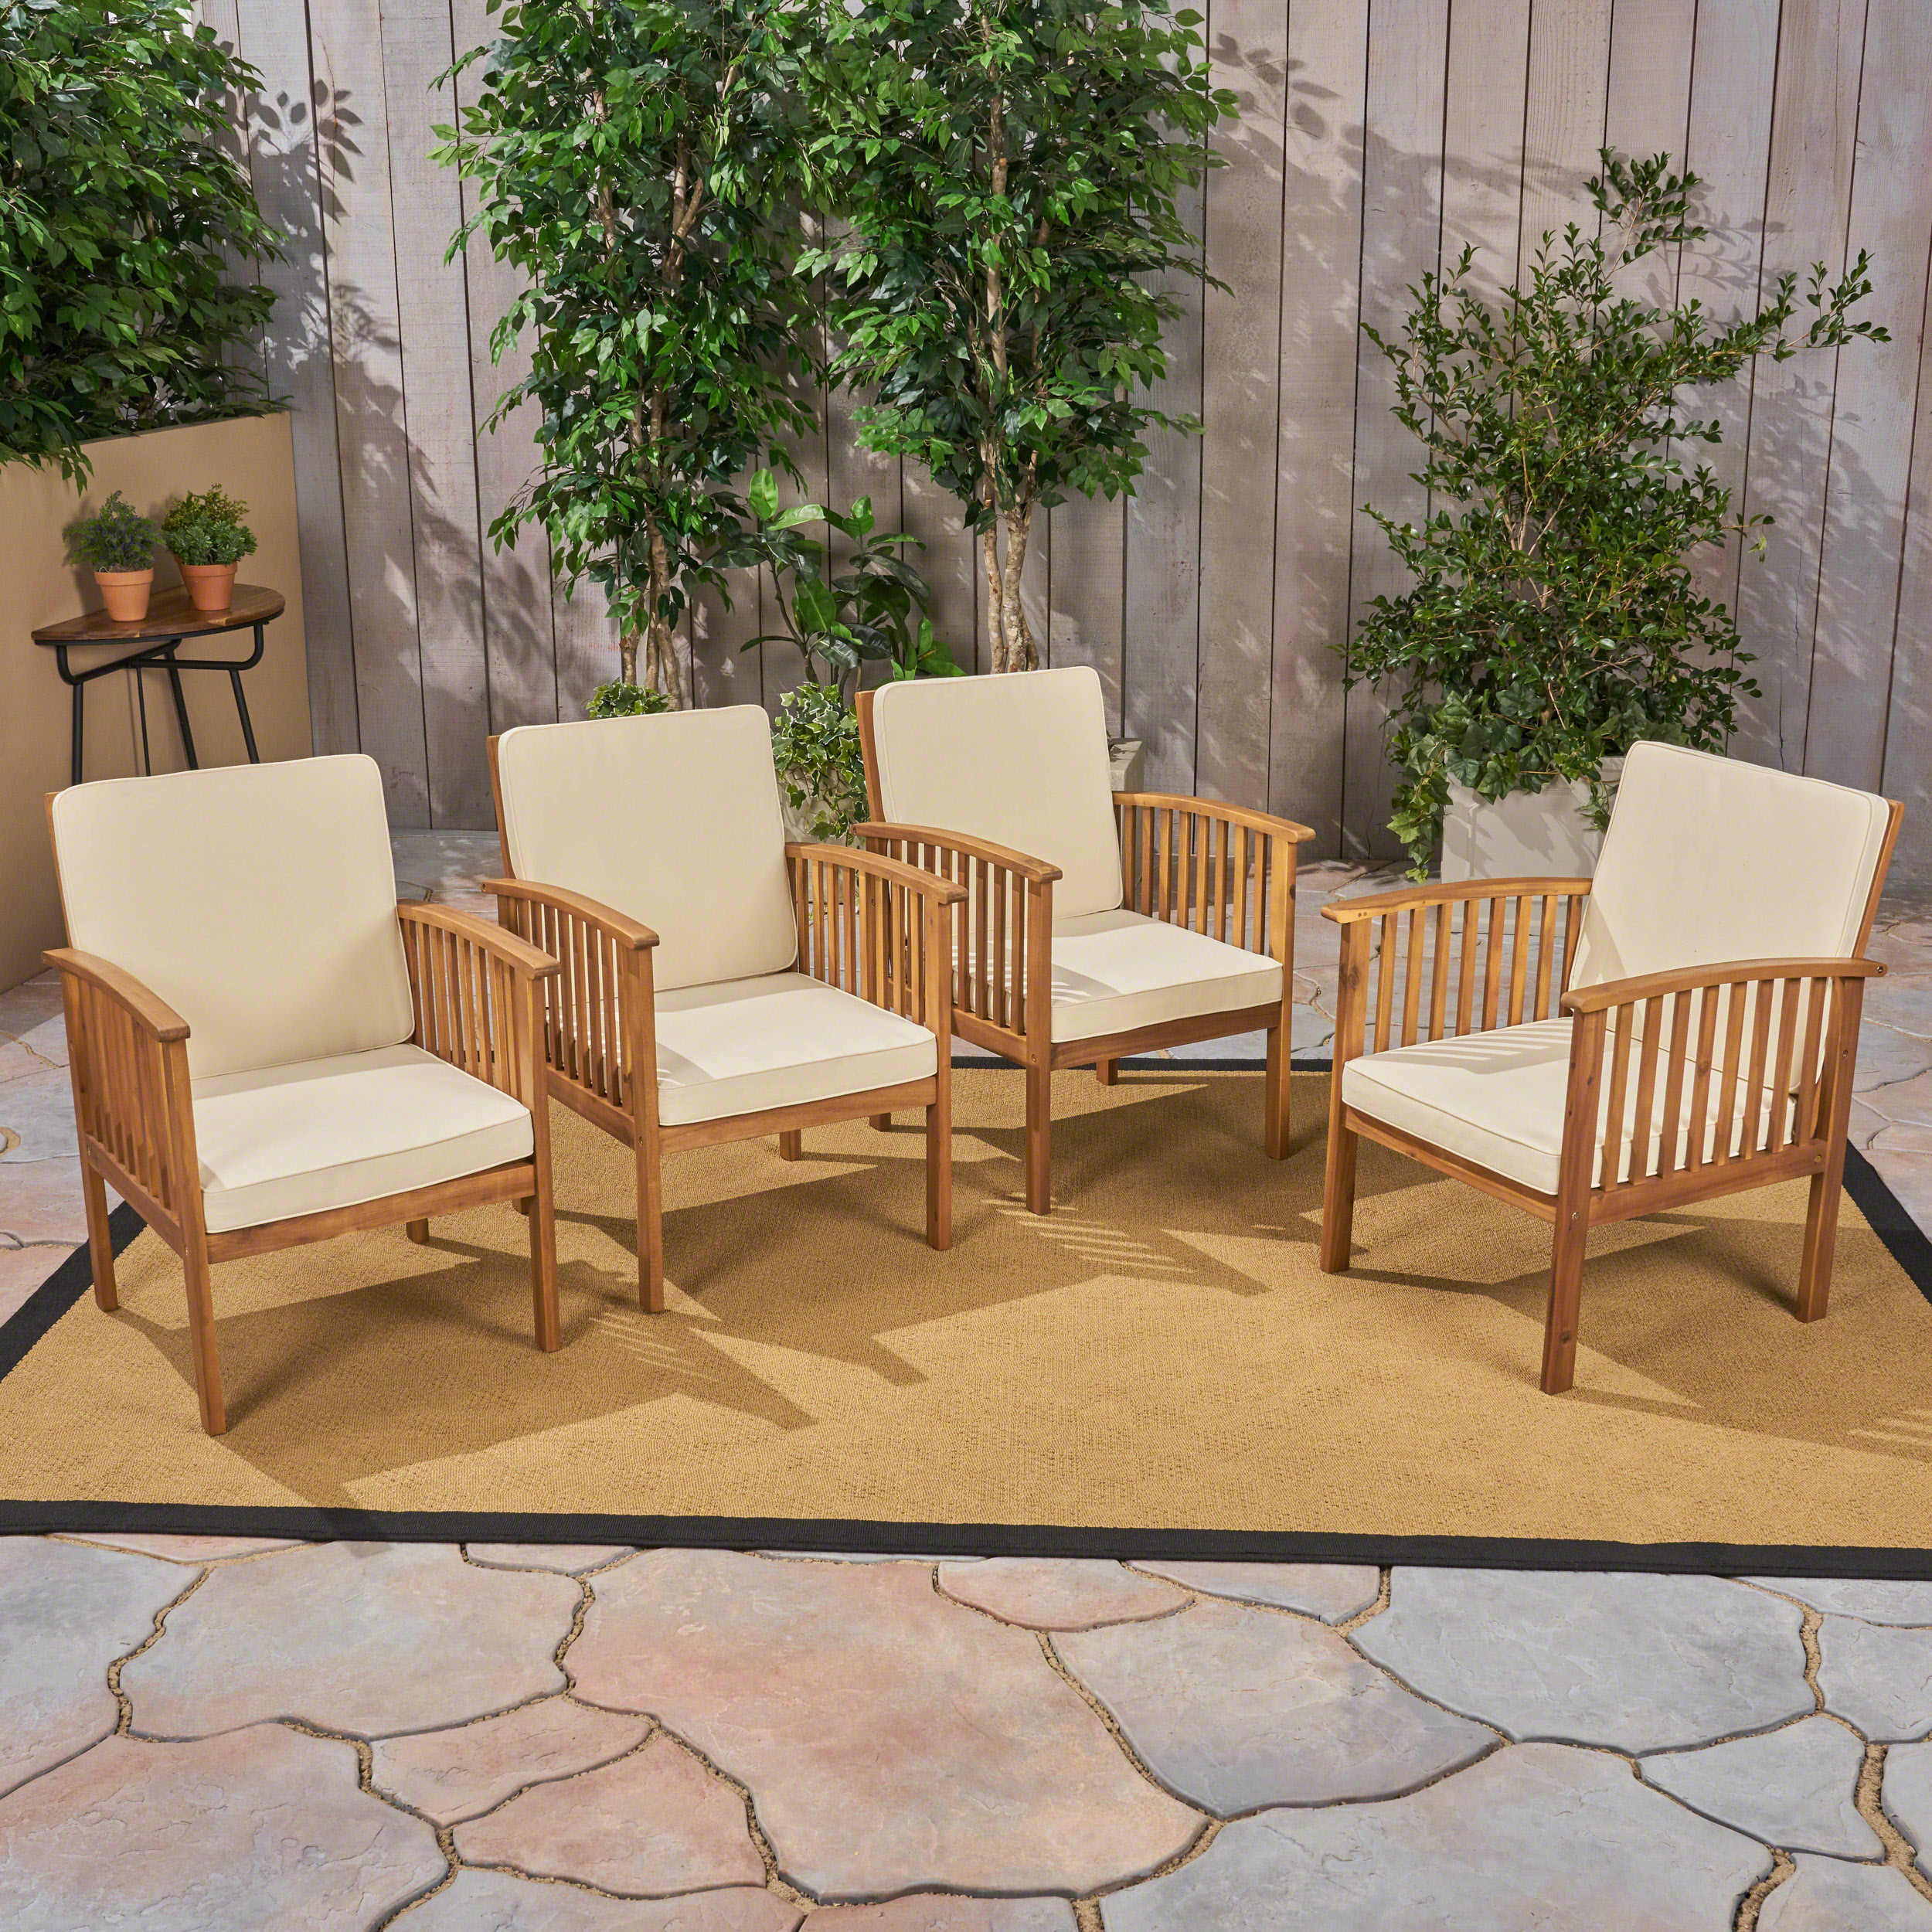 Frederic Outdoor Acacia Wood Club Chairs With Cushions, Set of 4, Brown Patina, Dark Teal